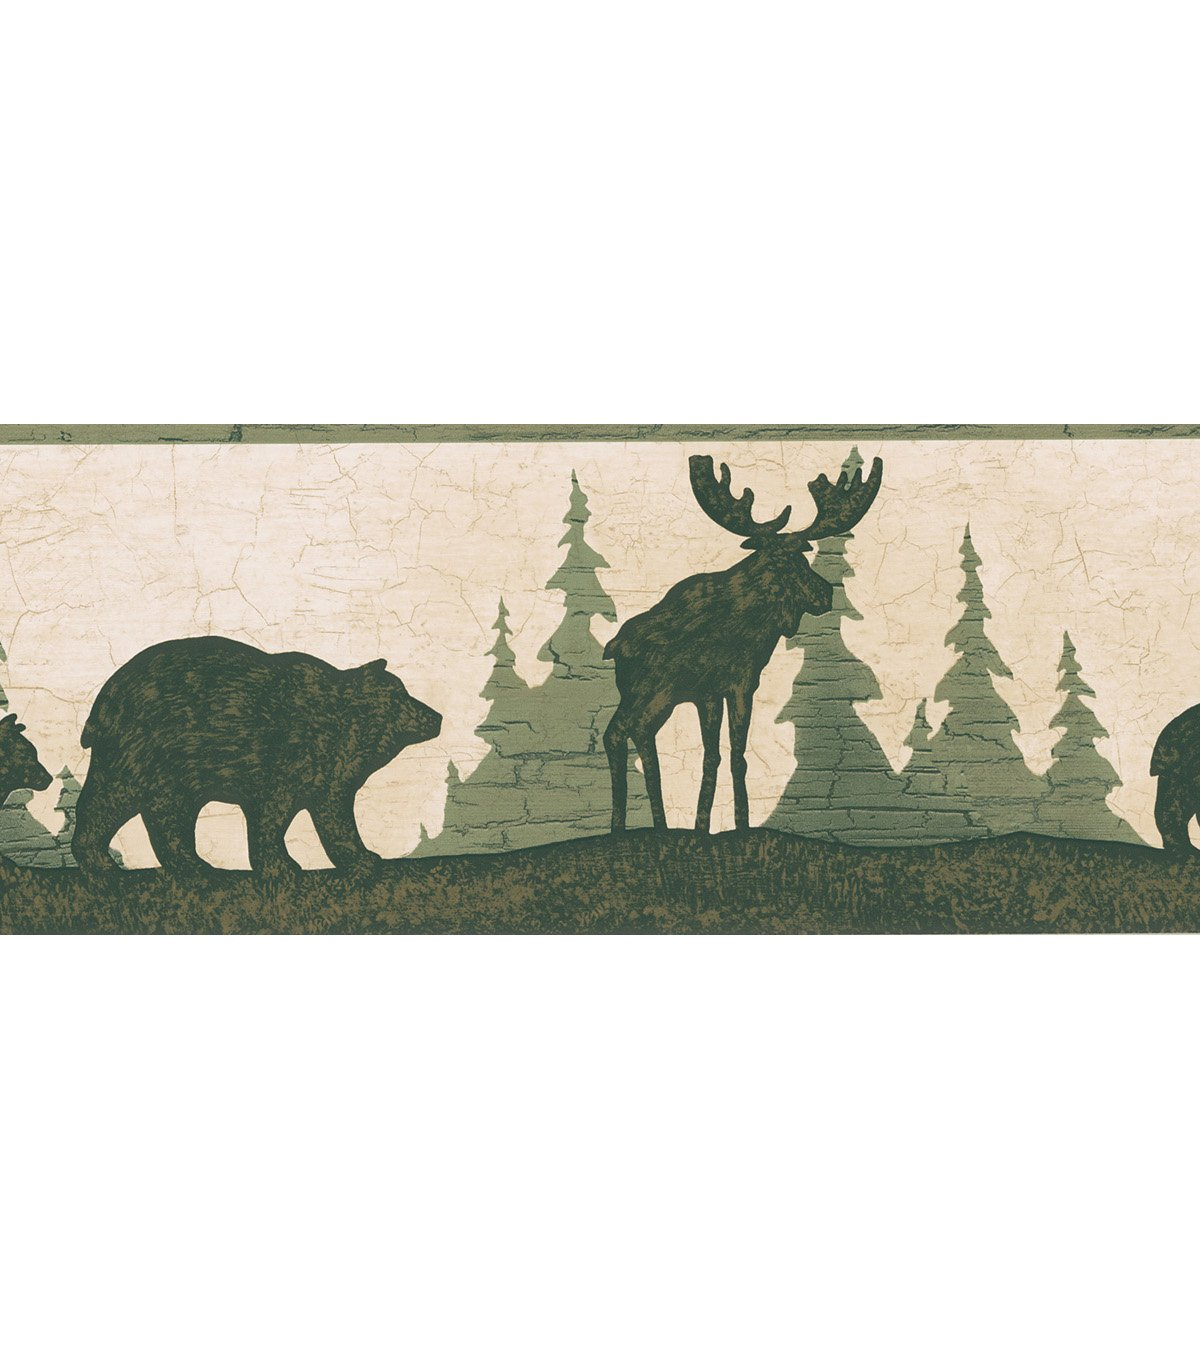 Great Woods Green Bear And Moose Silhouette Wallpaper Border Sample 1200x1360